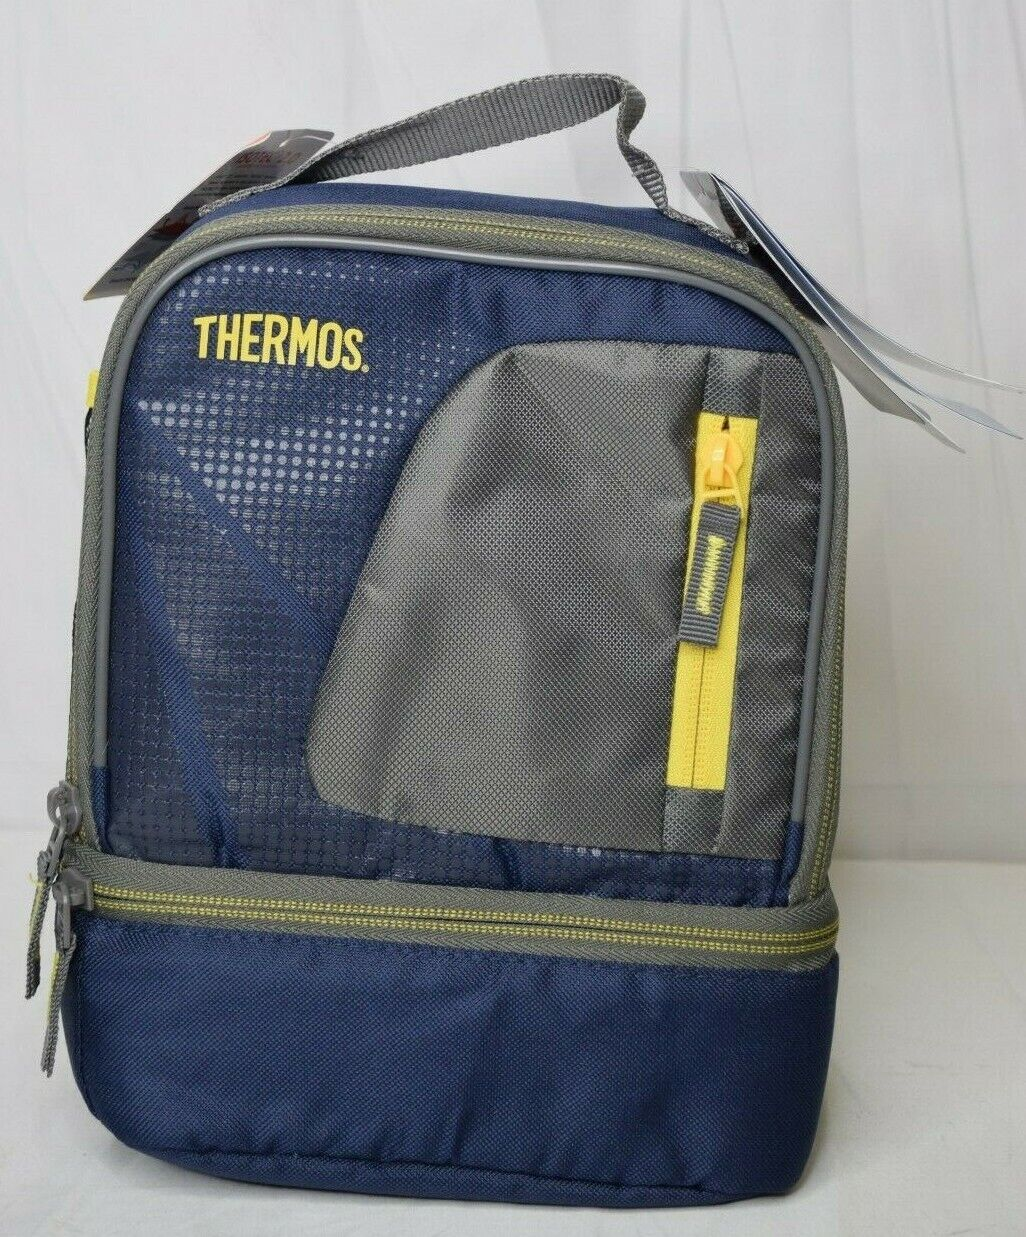 Thermos Radiance Dual Compartment Insulated Carrying Lunch B